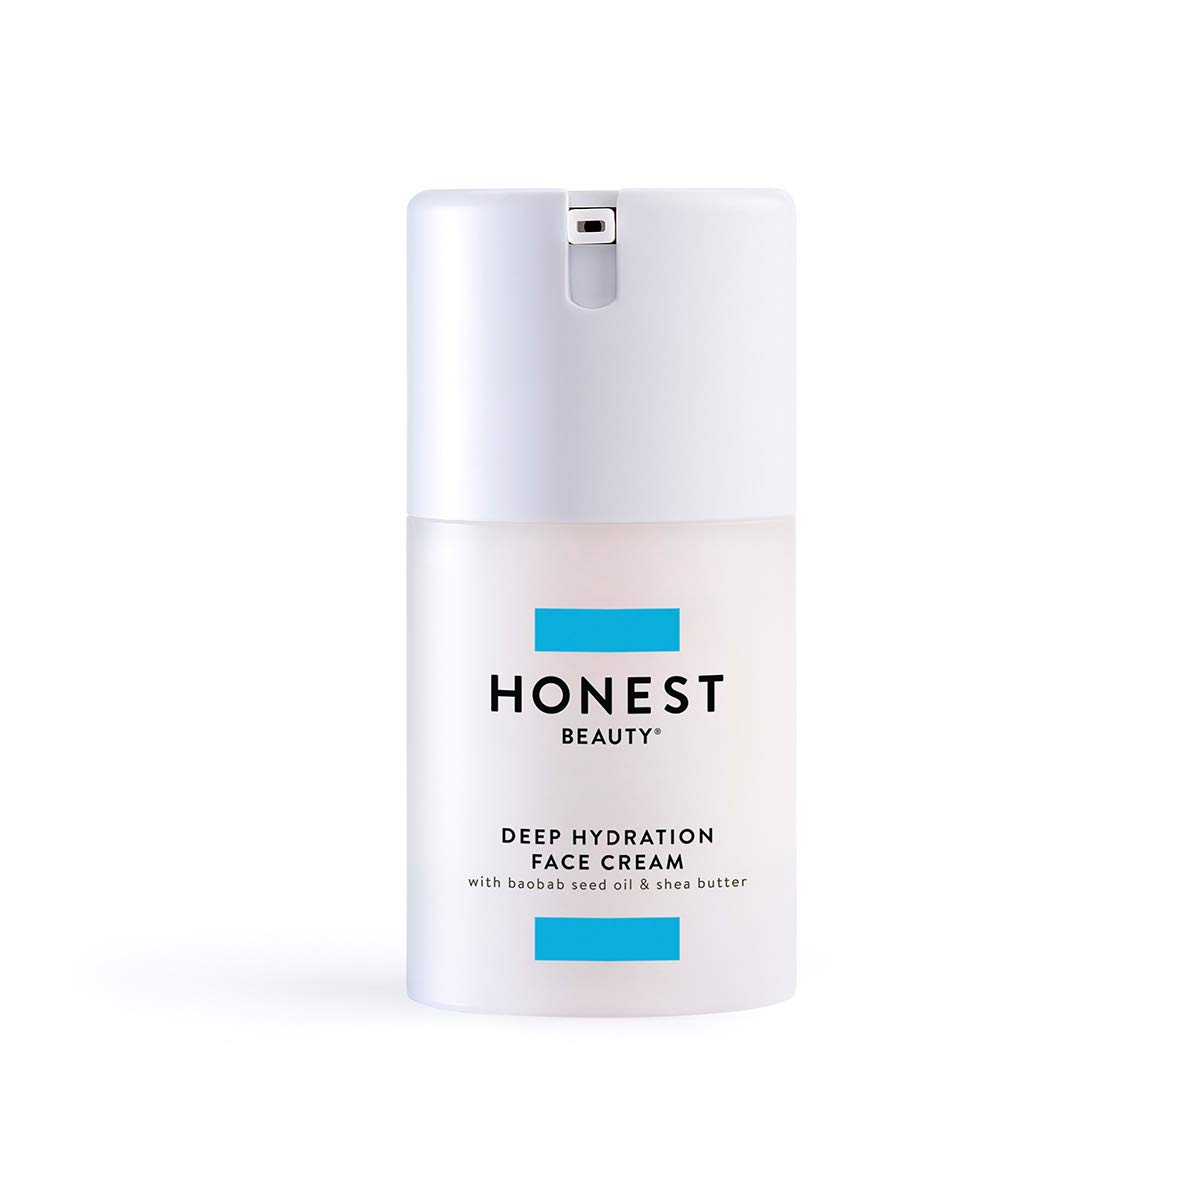 Honest Beauty Deep Hydration Face Cream with Baobab Seed Oil & Shea Butter | Paraben Free, Dermatologist Tested, Cruelty Free |1.69 fl. oz. (Packaging May Vary)